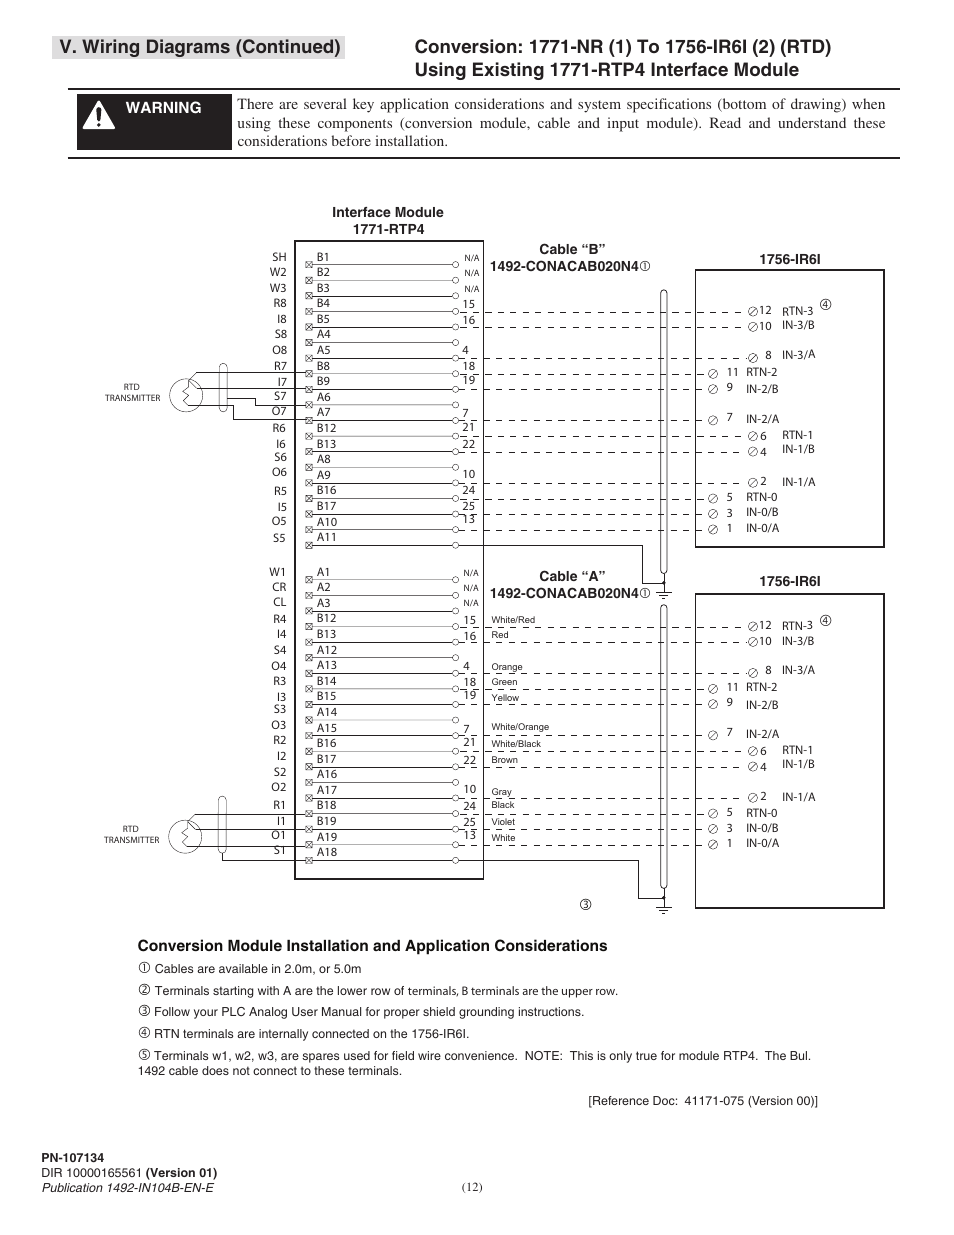 I O Wiring Diagrams : V wiring diagrams continued rockwell automation